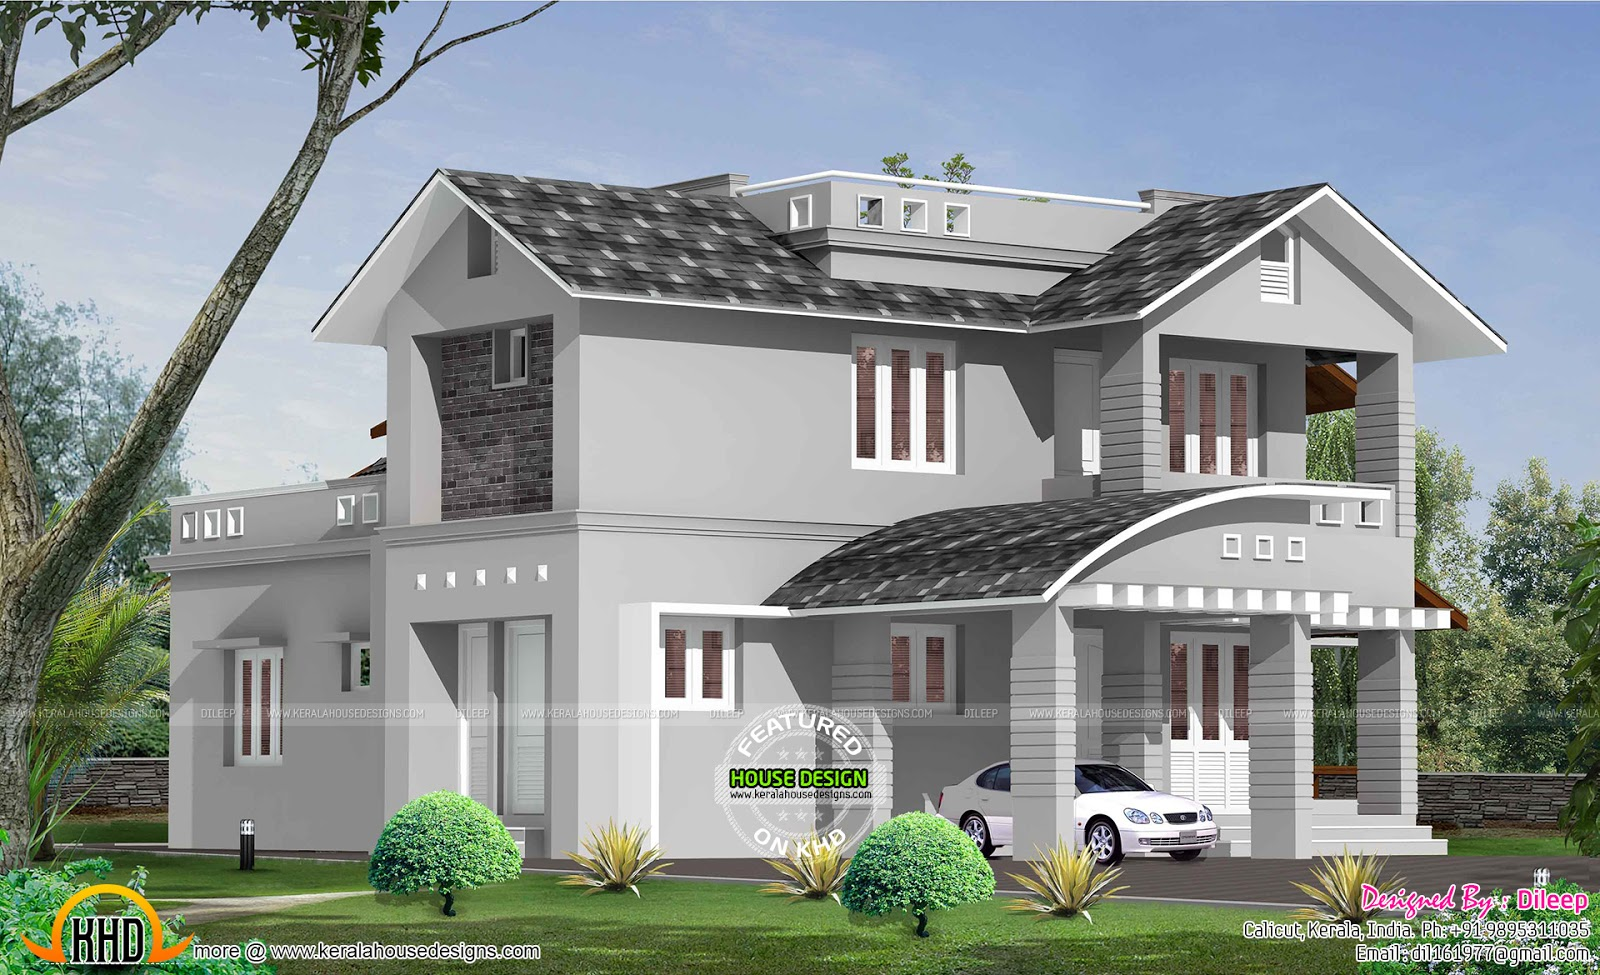 Wonderful 4 Bedroom Mixed Roof Home Part - 1: 4 Bedroom Mixed Roof House